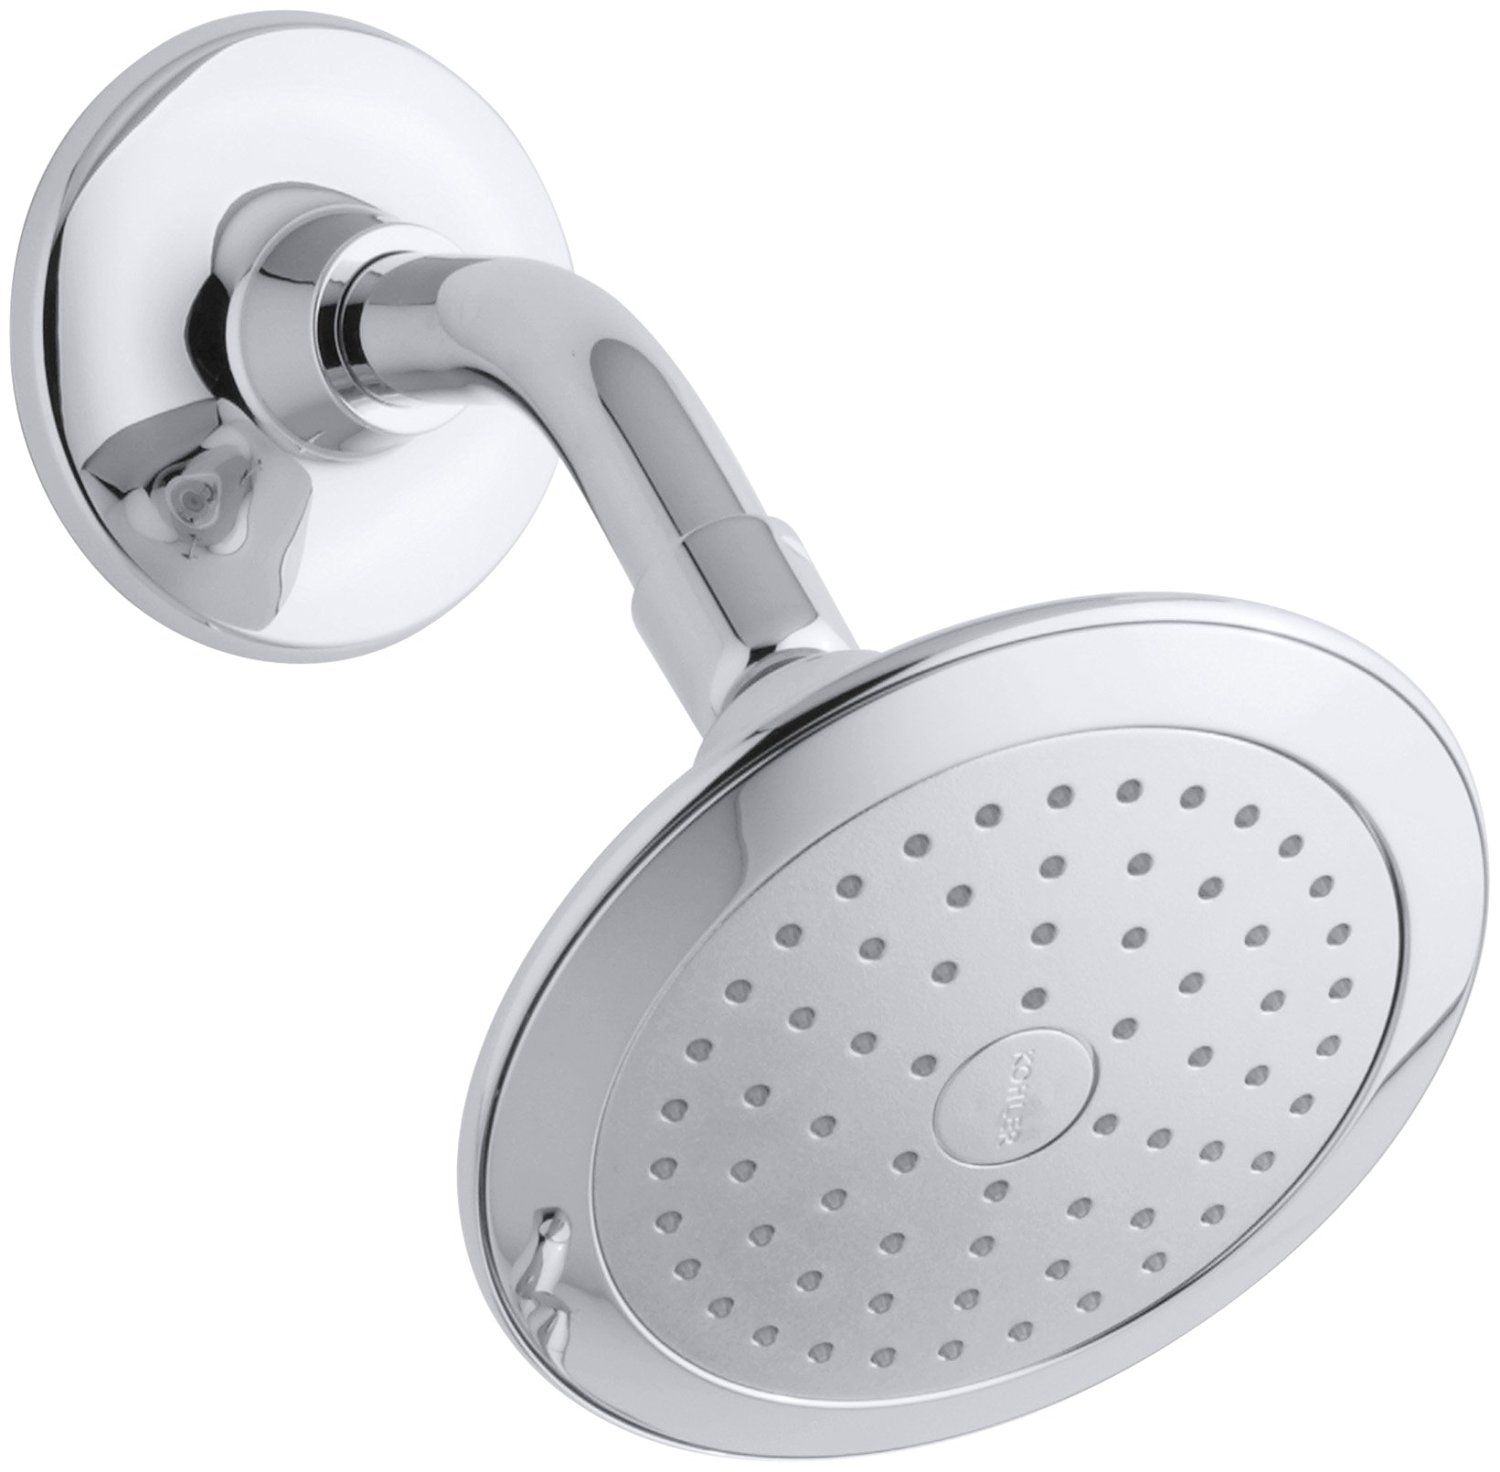 Marvelous Cool Top 10 Best Kohler Shower Heads    An Unbiased Review